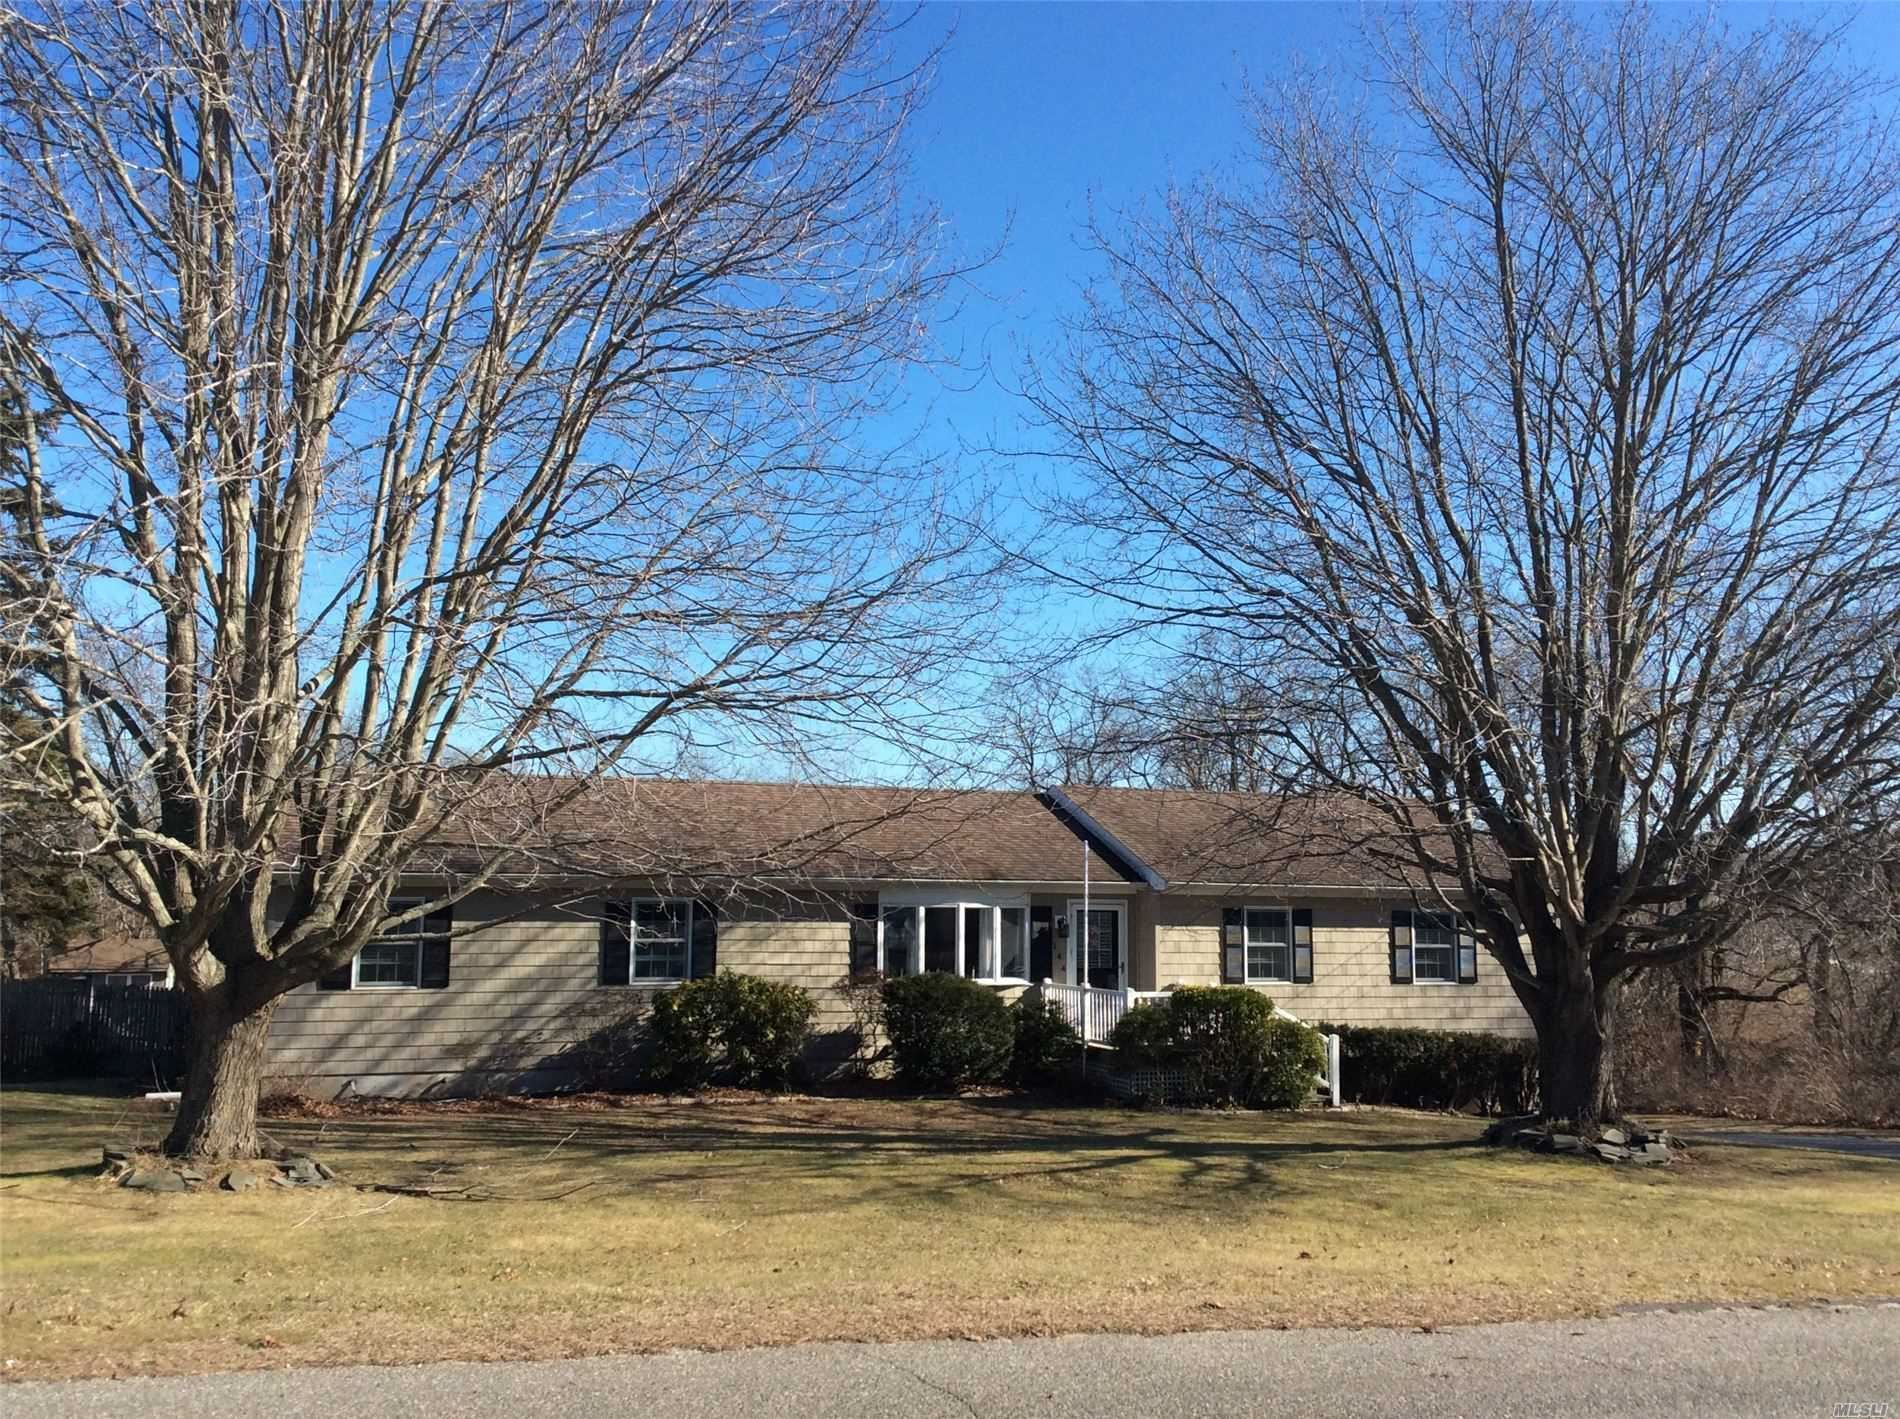 144 Manor Lane, Jamesport, NY 11947 - MLS#: 3183391